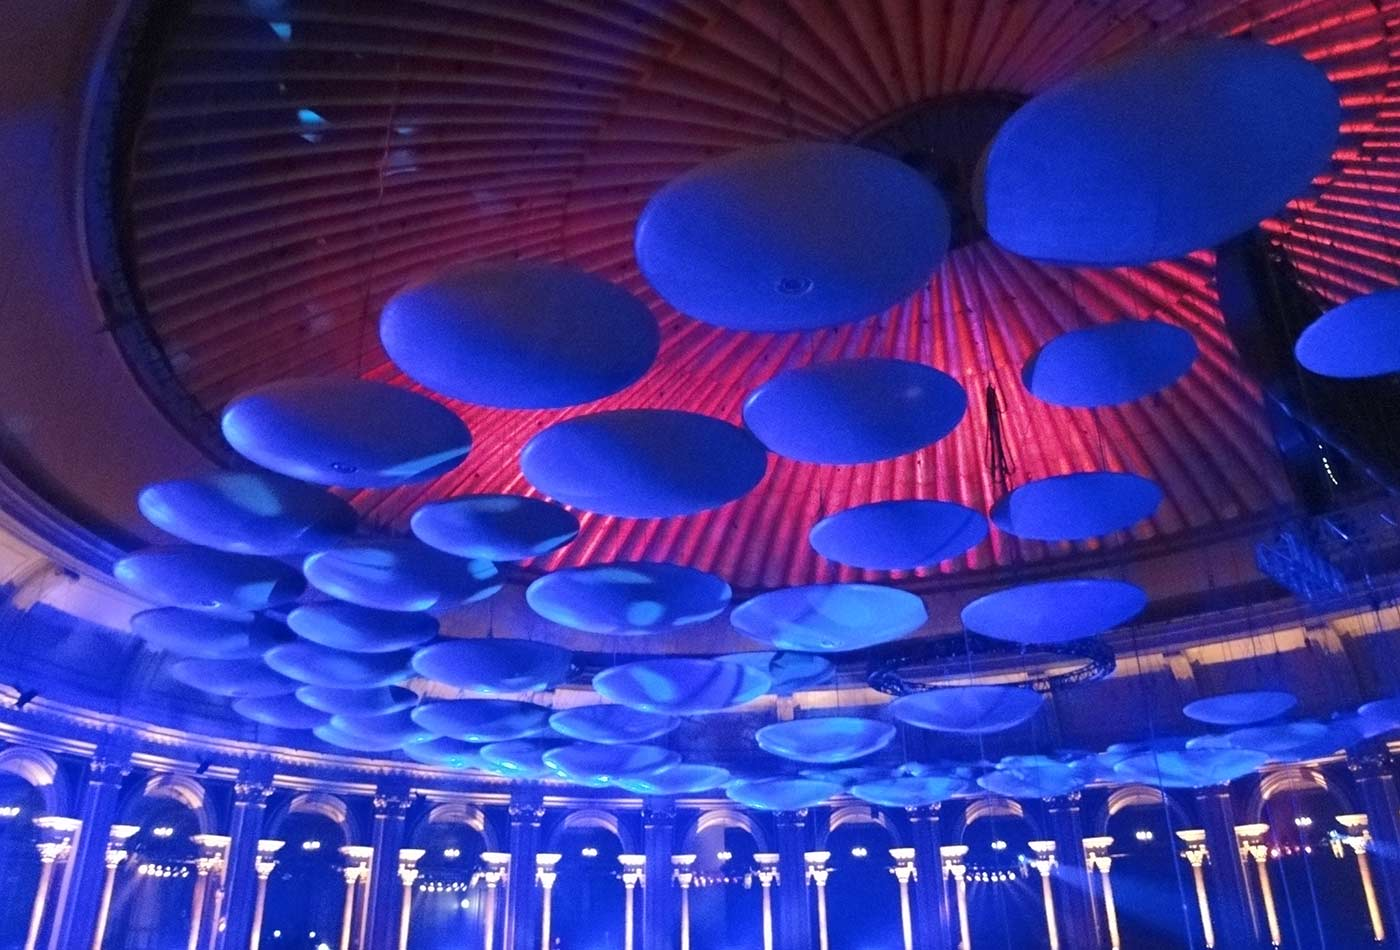 Acoustic discs suspended from the roof of London's Royal Albert Hall.